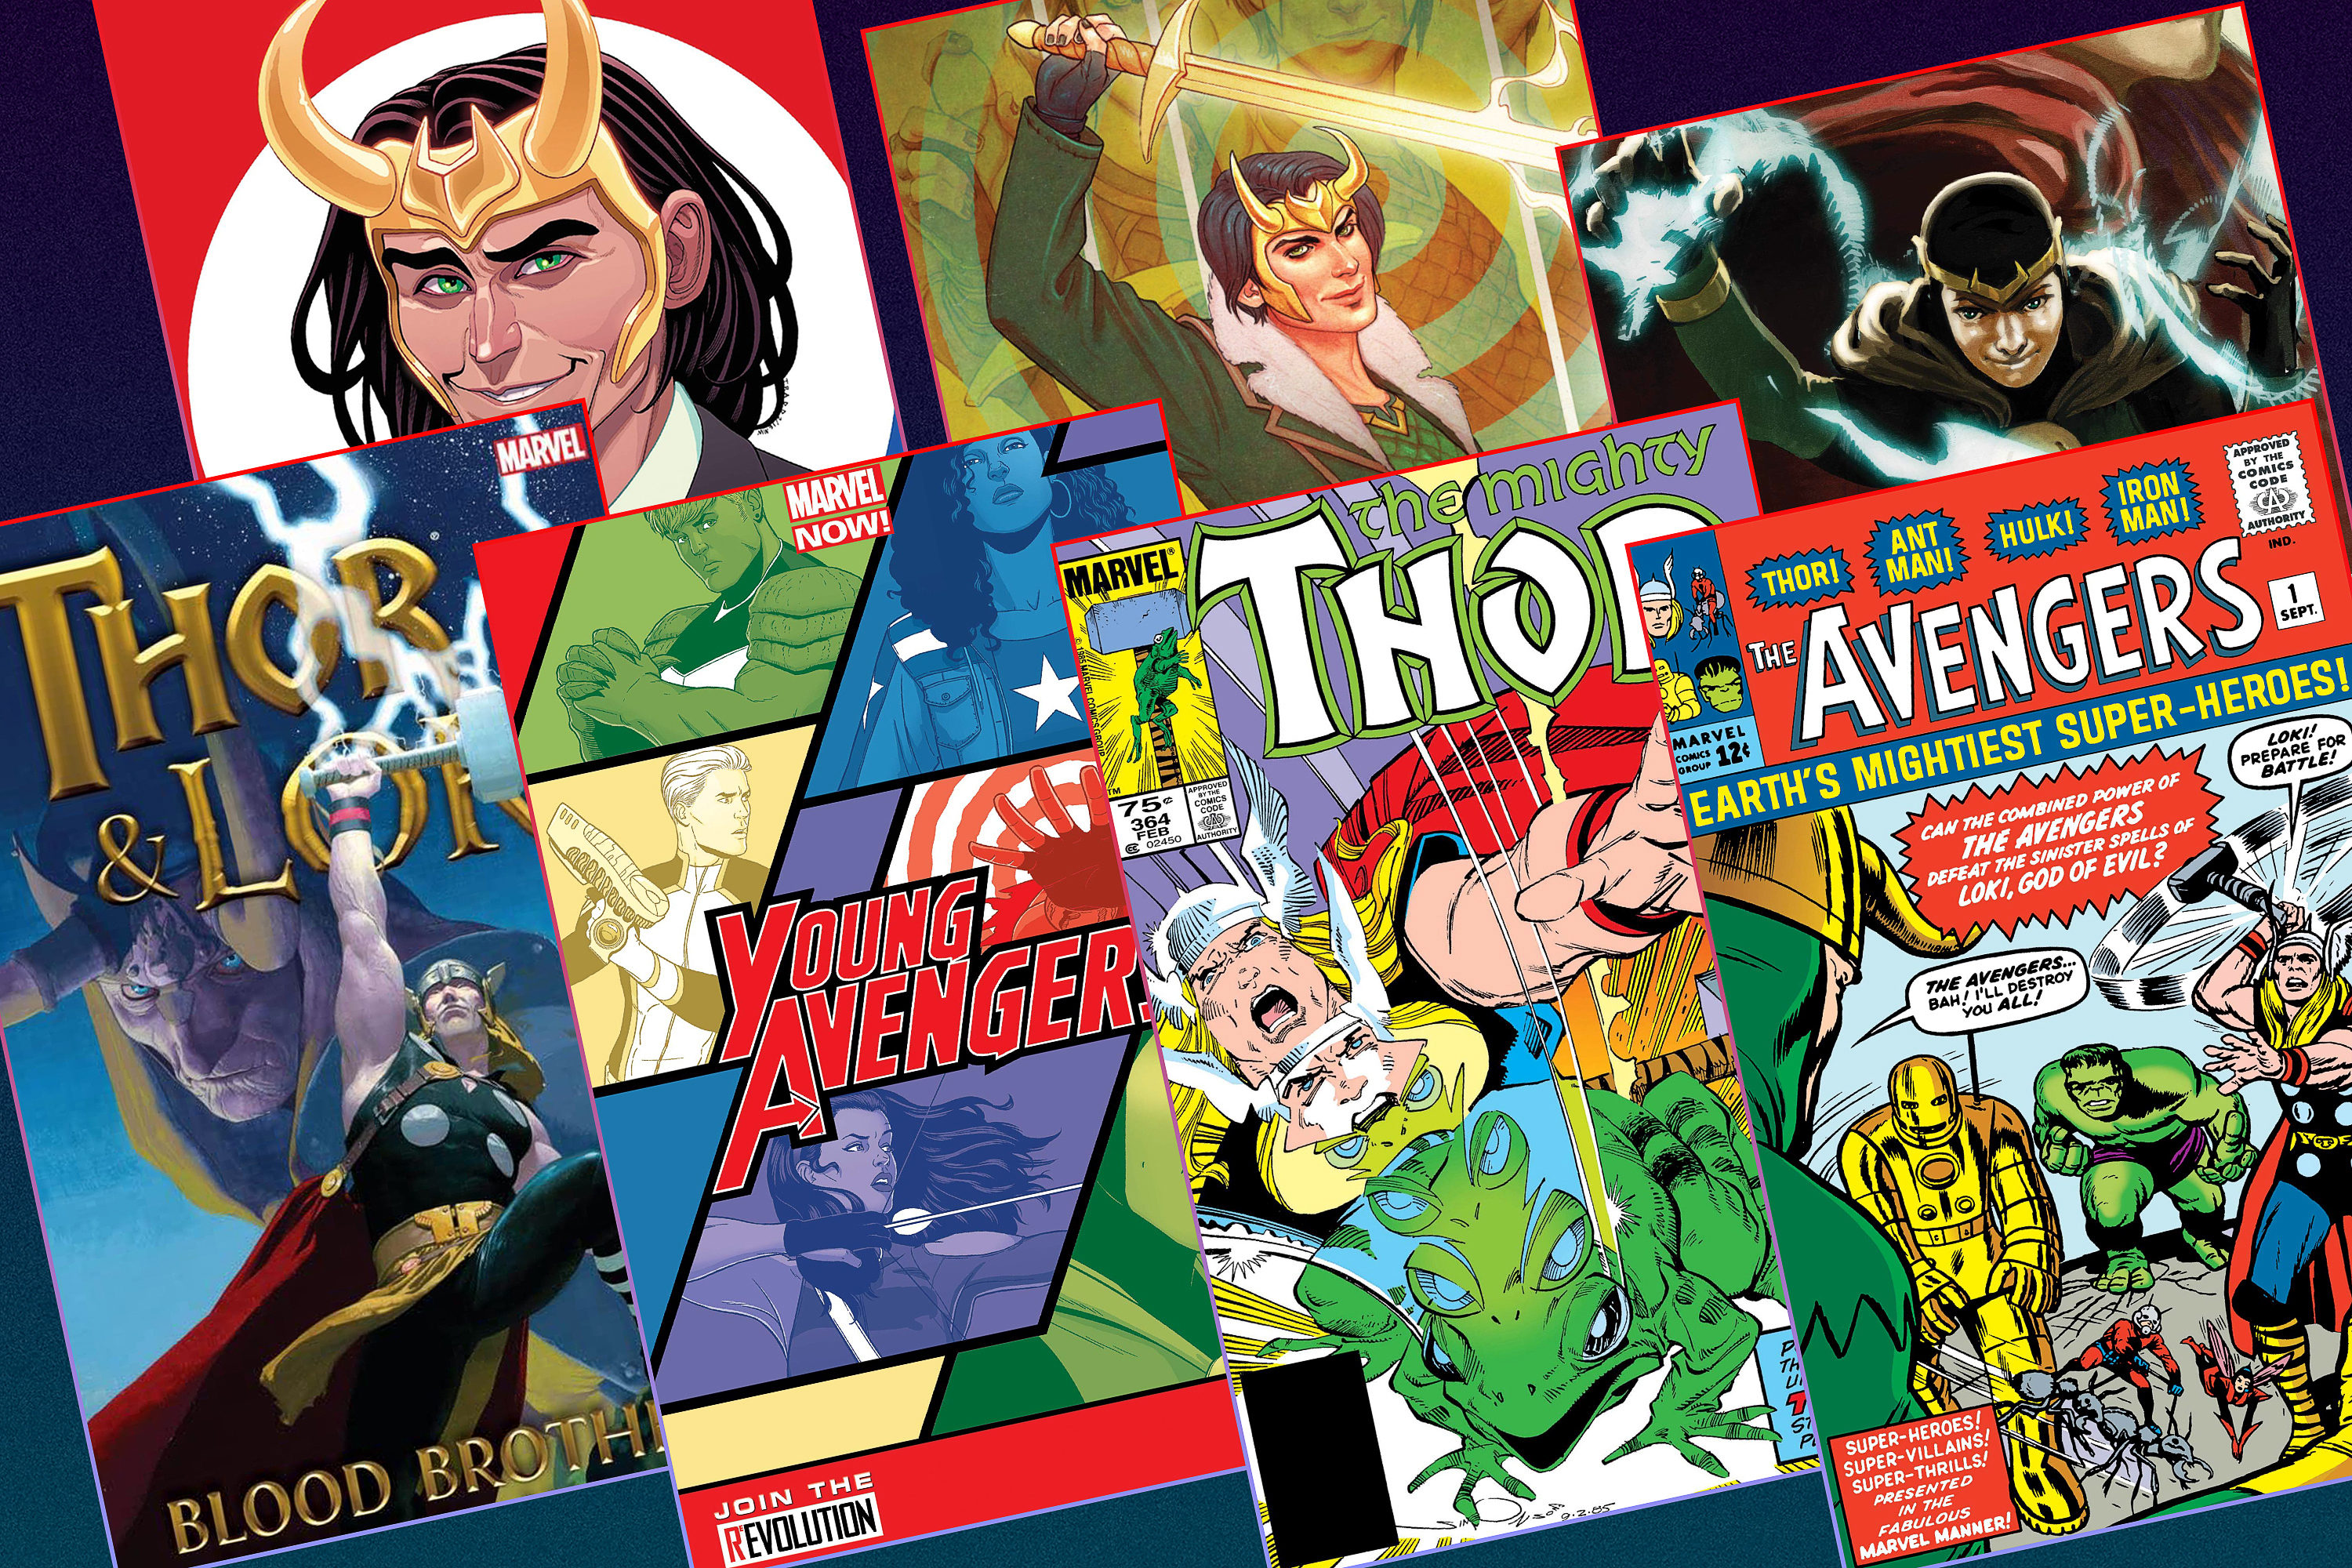 Graphic layout of seven different comic book covers featuring the character Loki